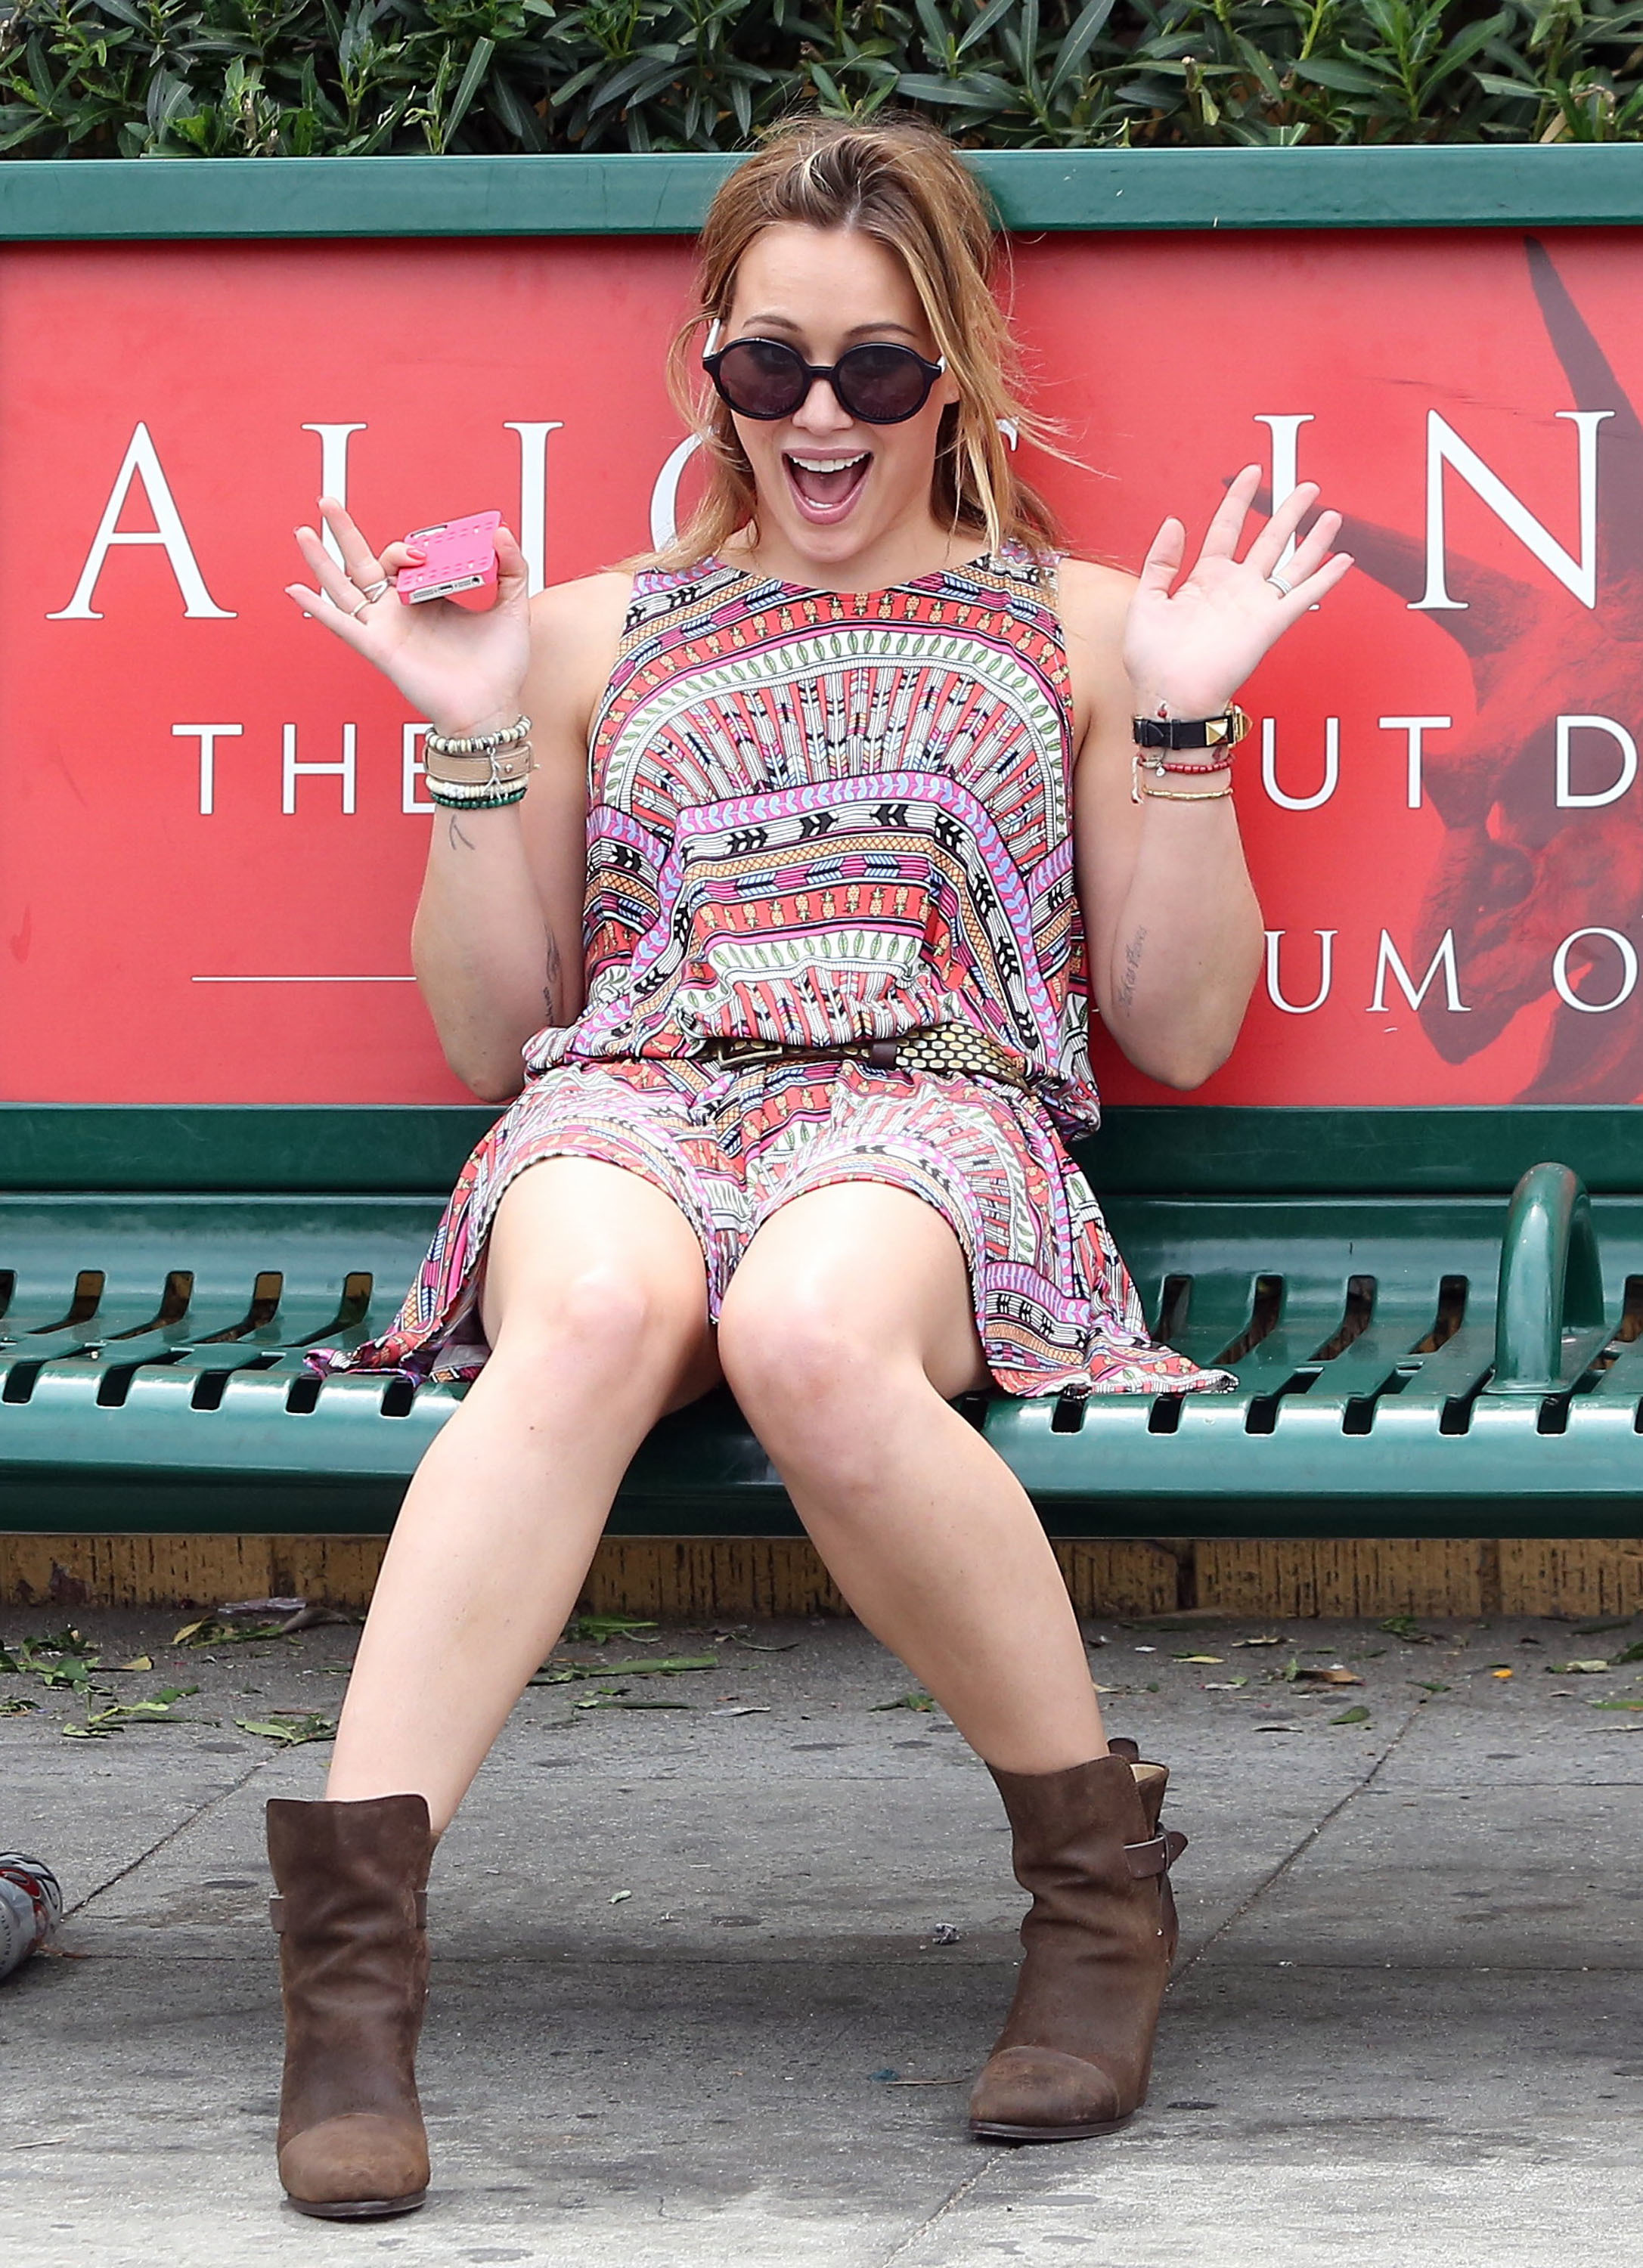 hilary duff excited